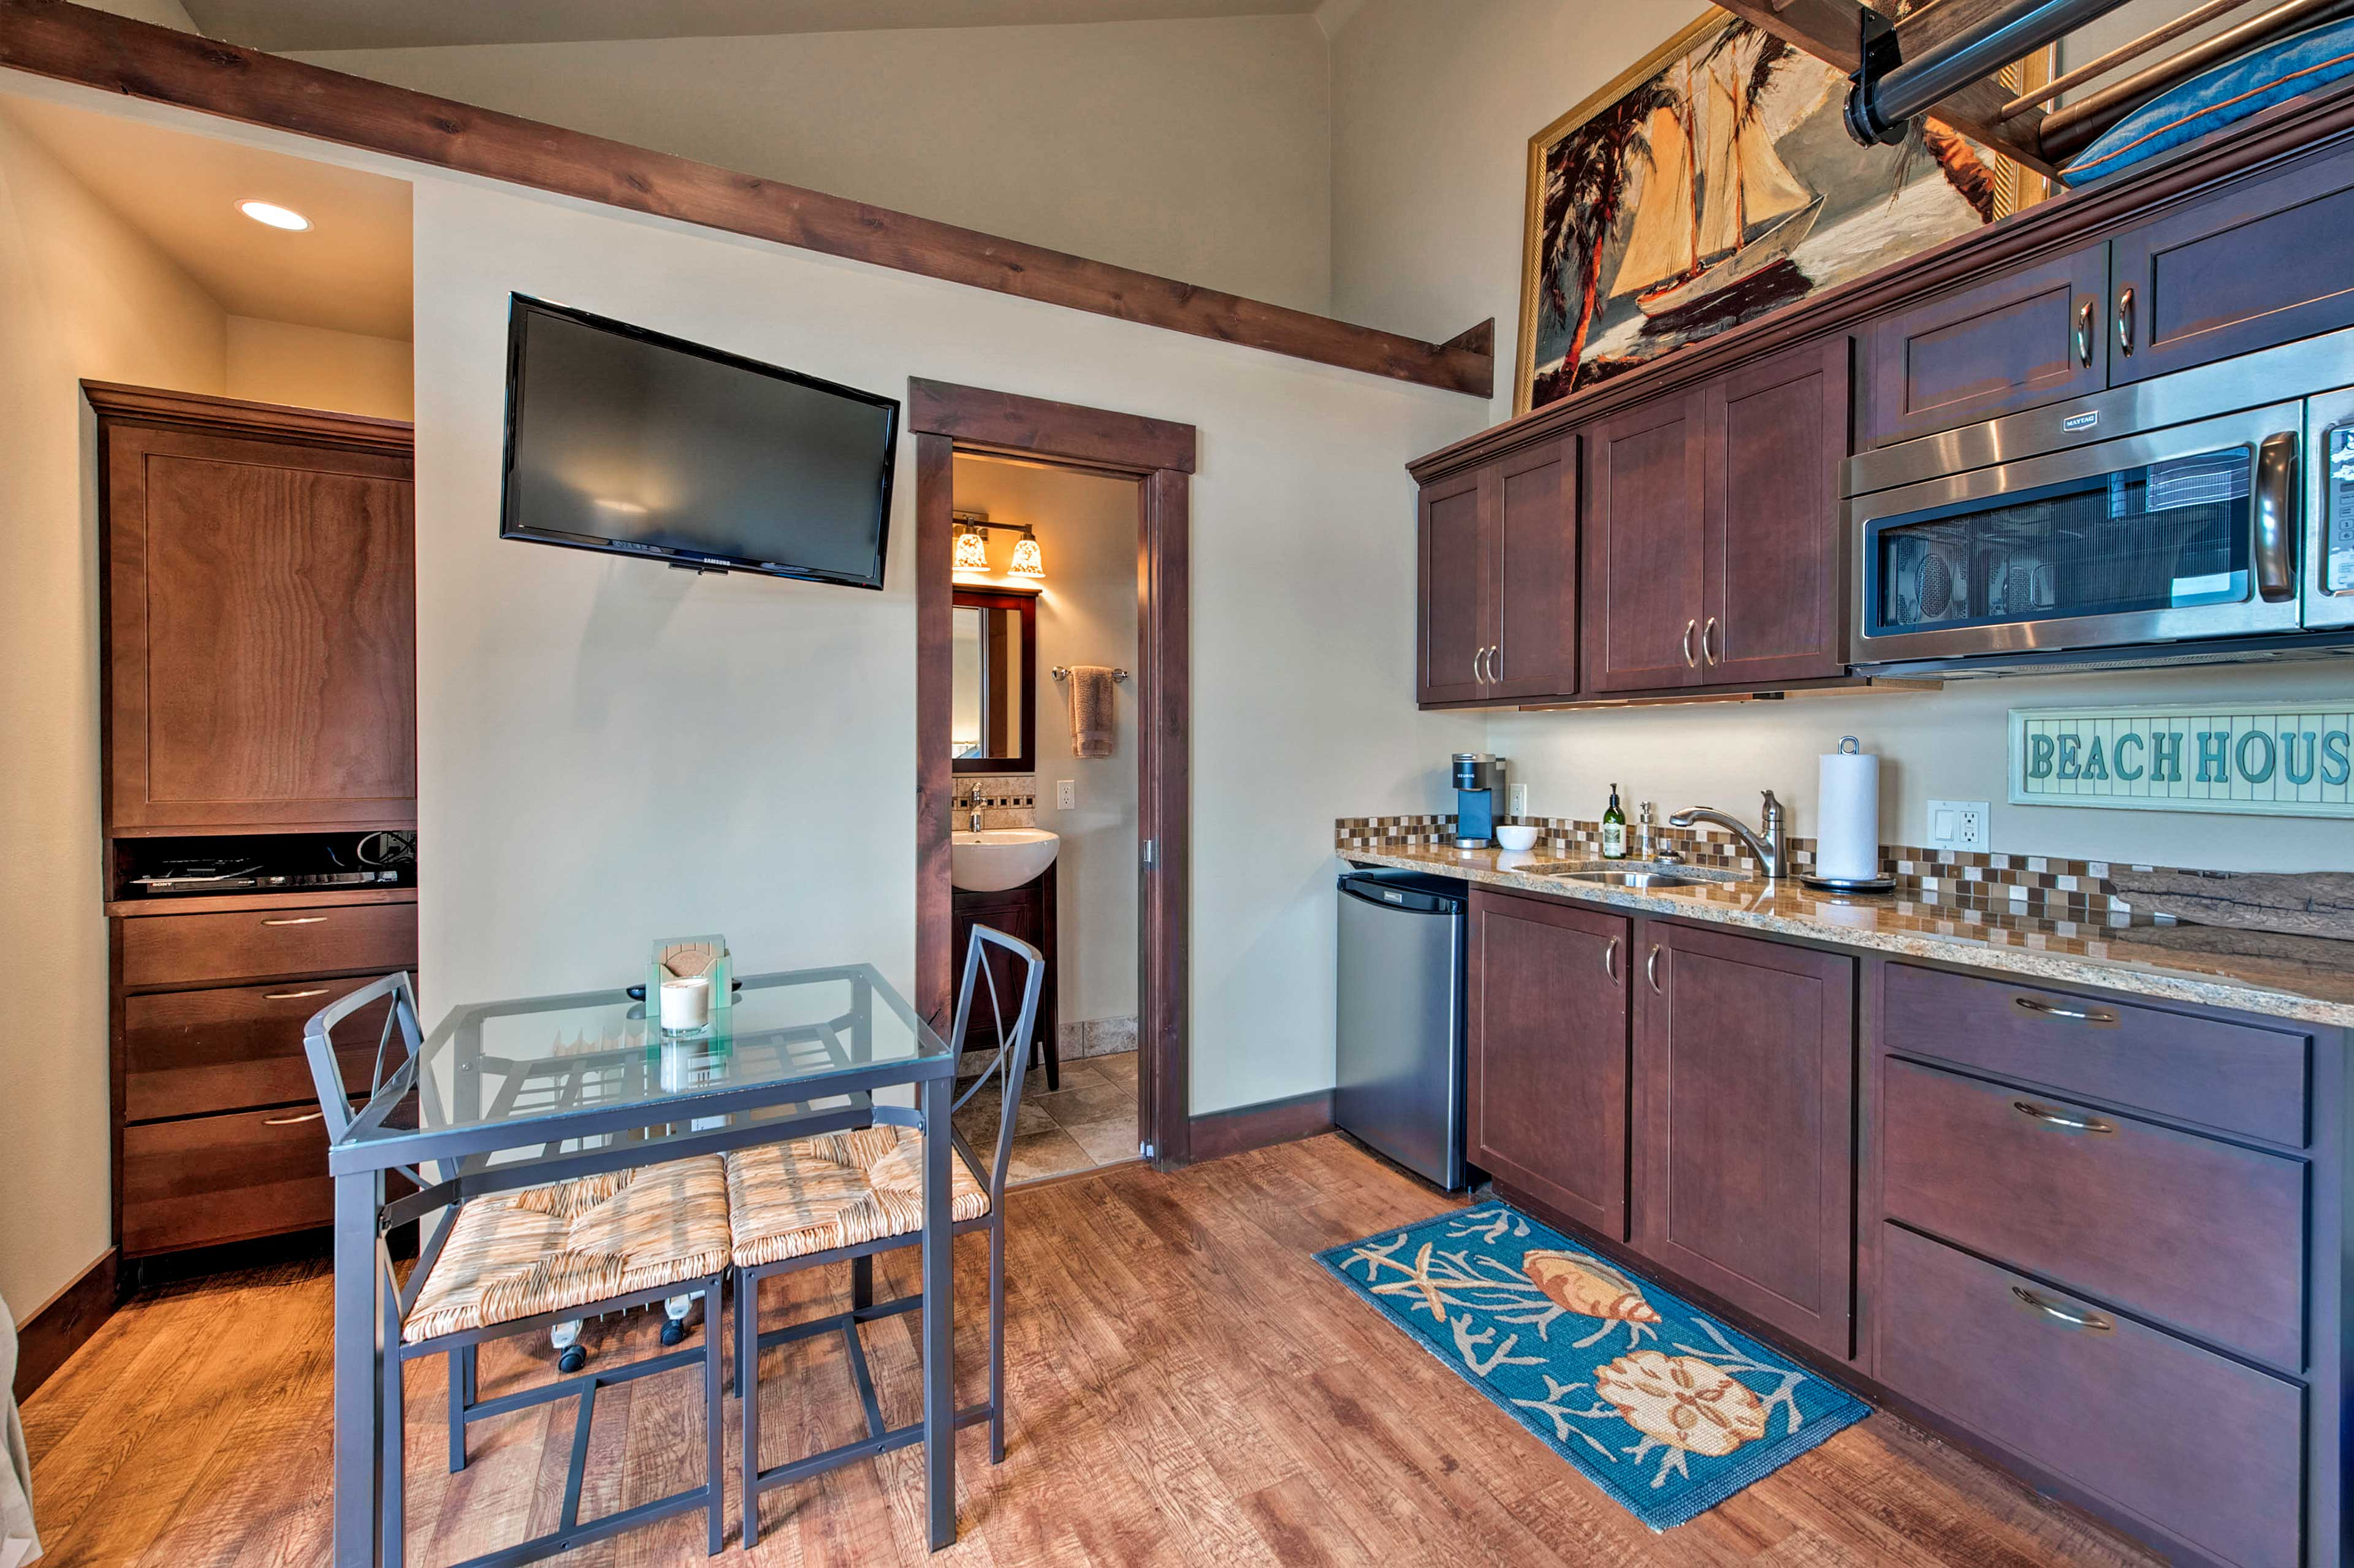 Your cooking needs can all be handled with the kitchenette.